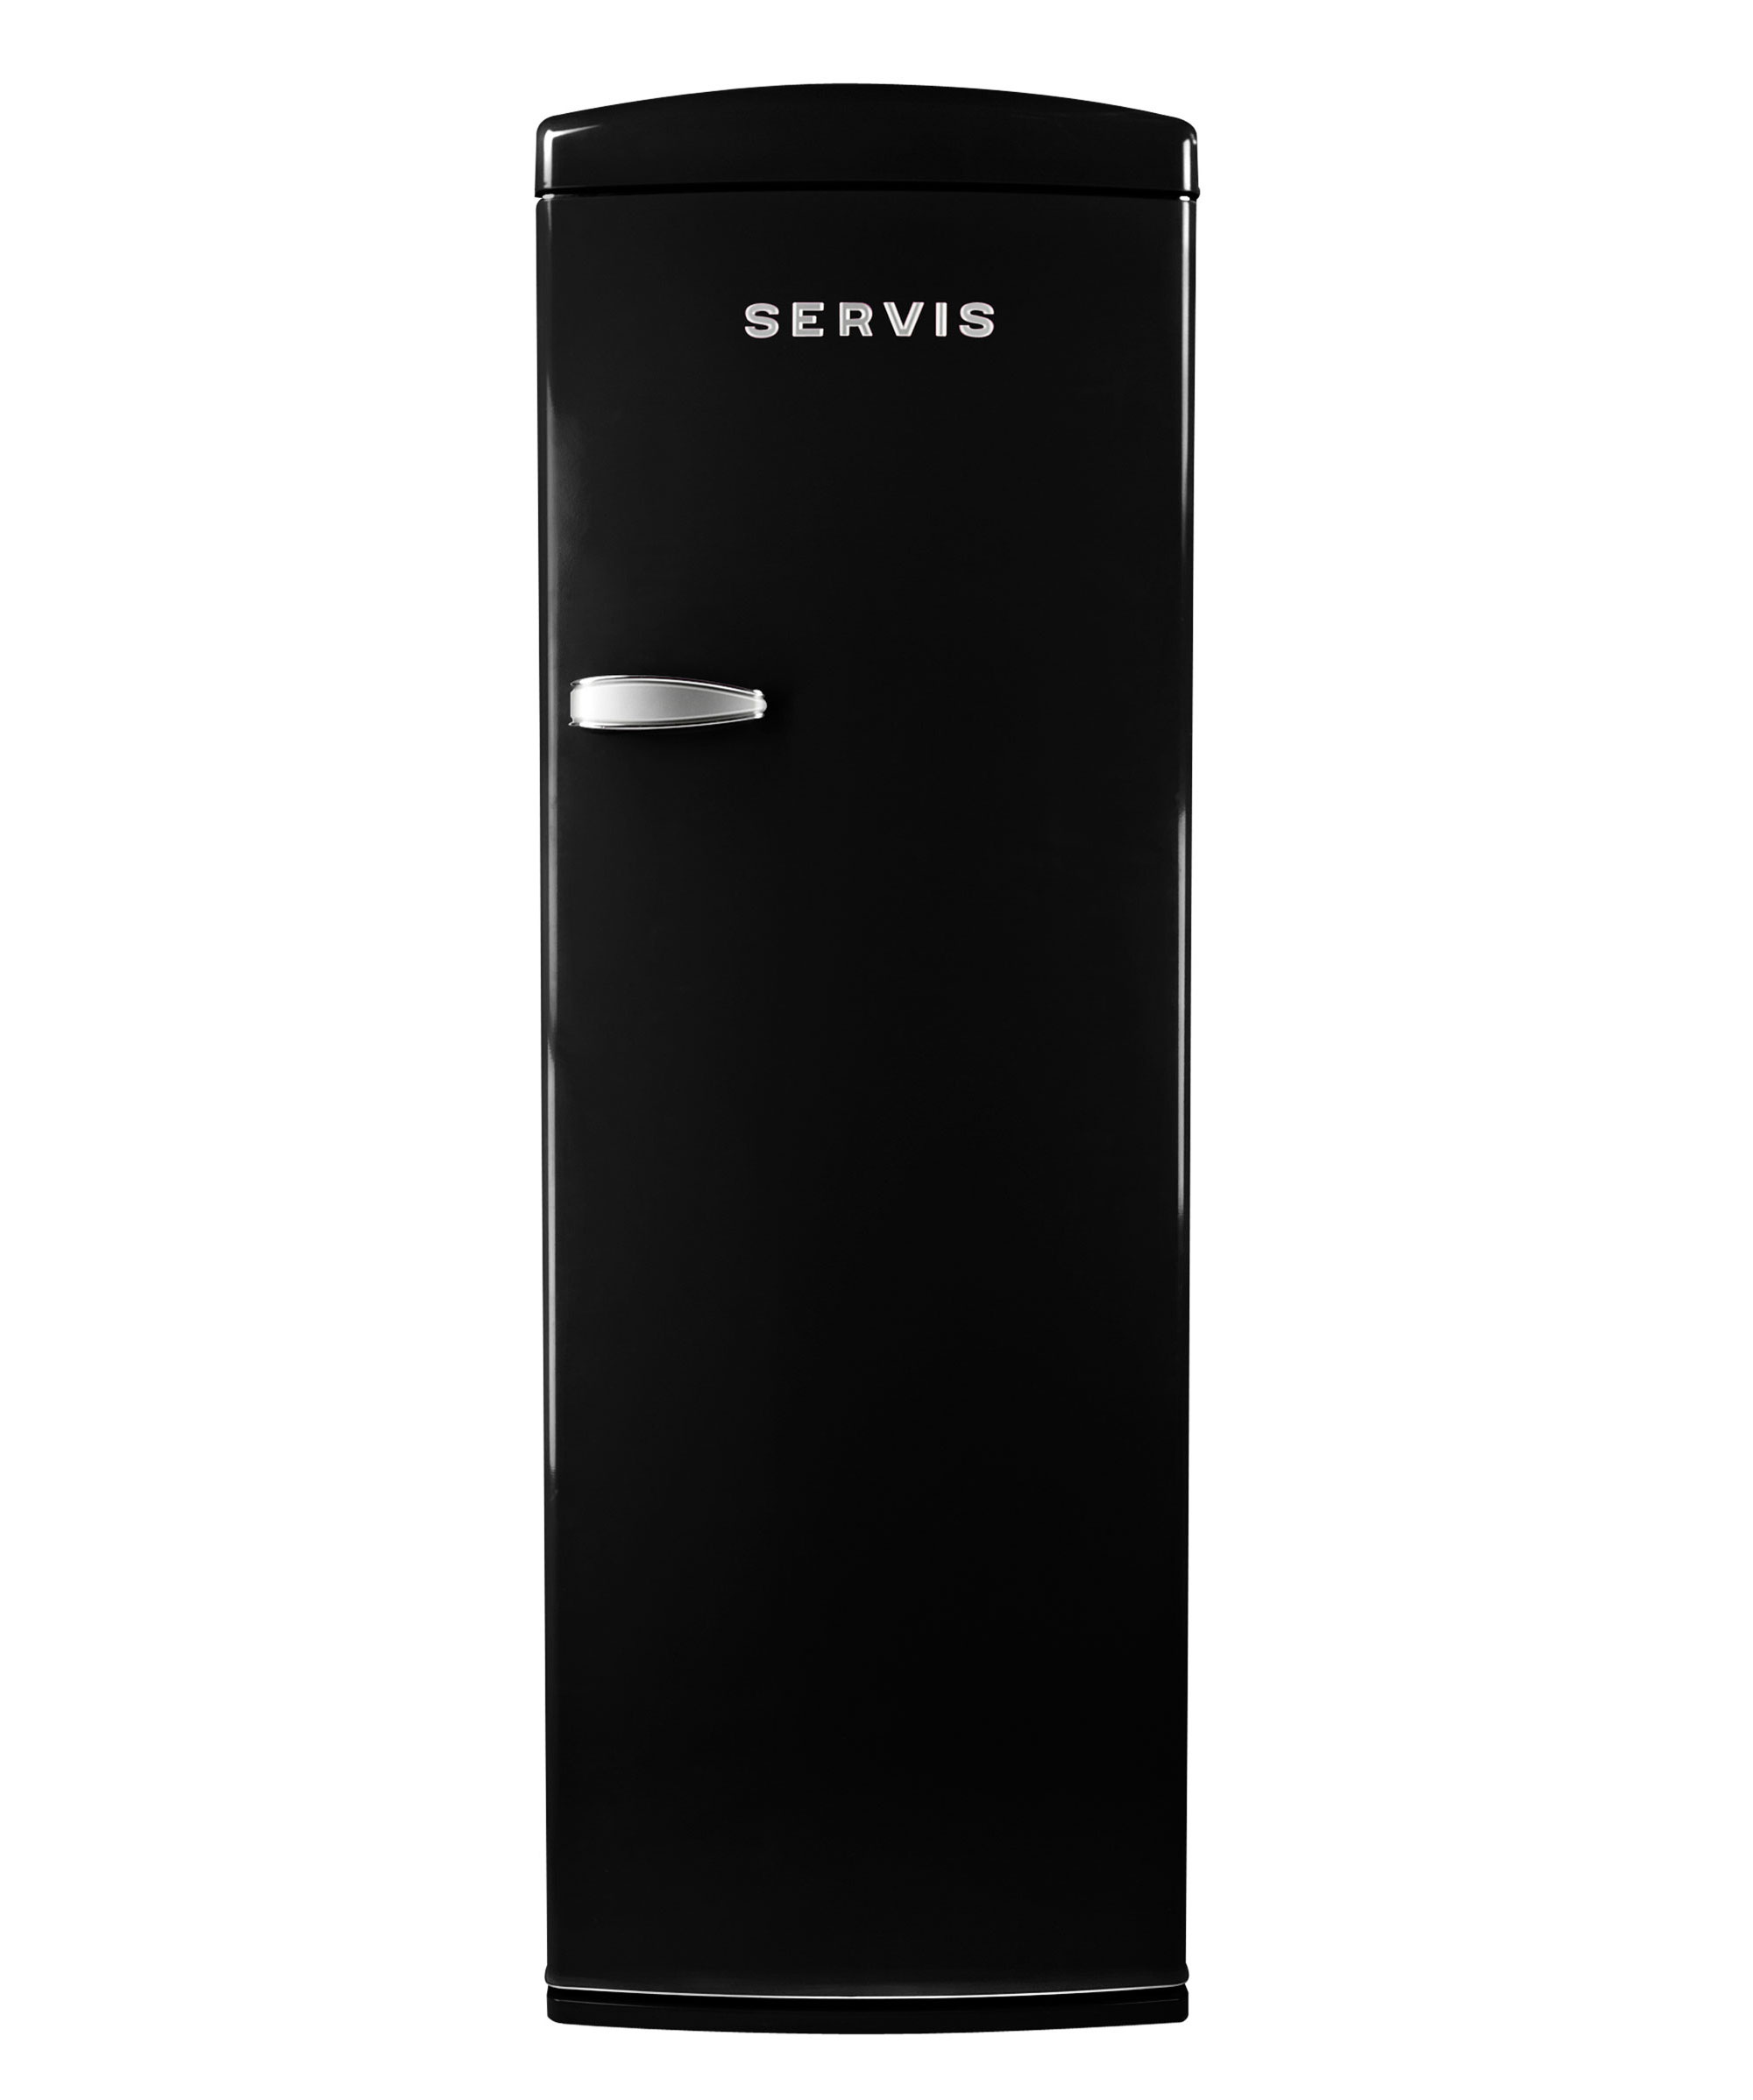 R60170B - Jet black - Retro Fridge